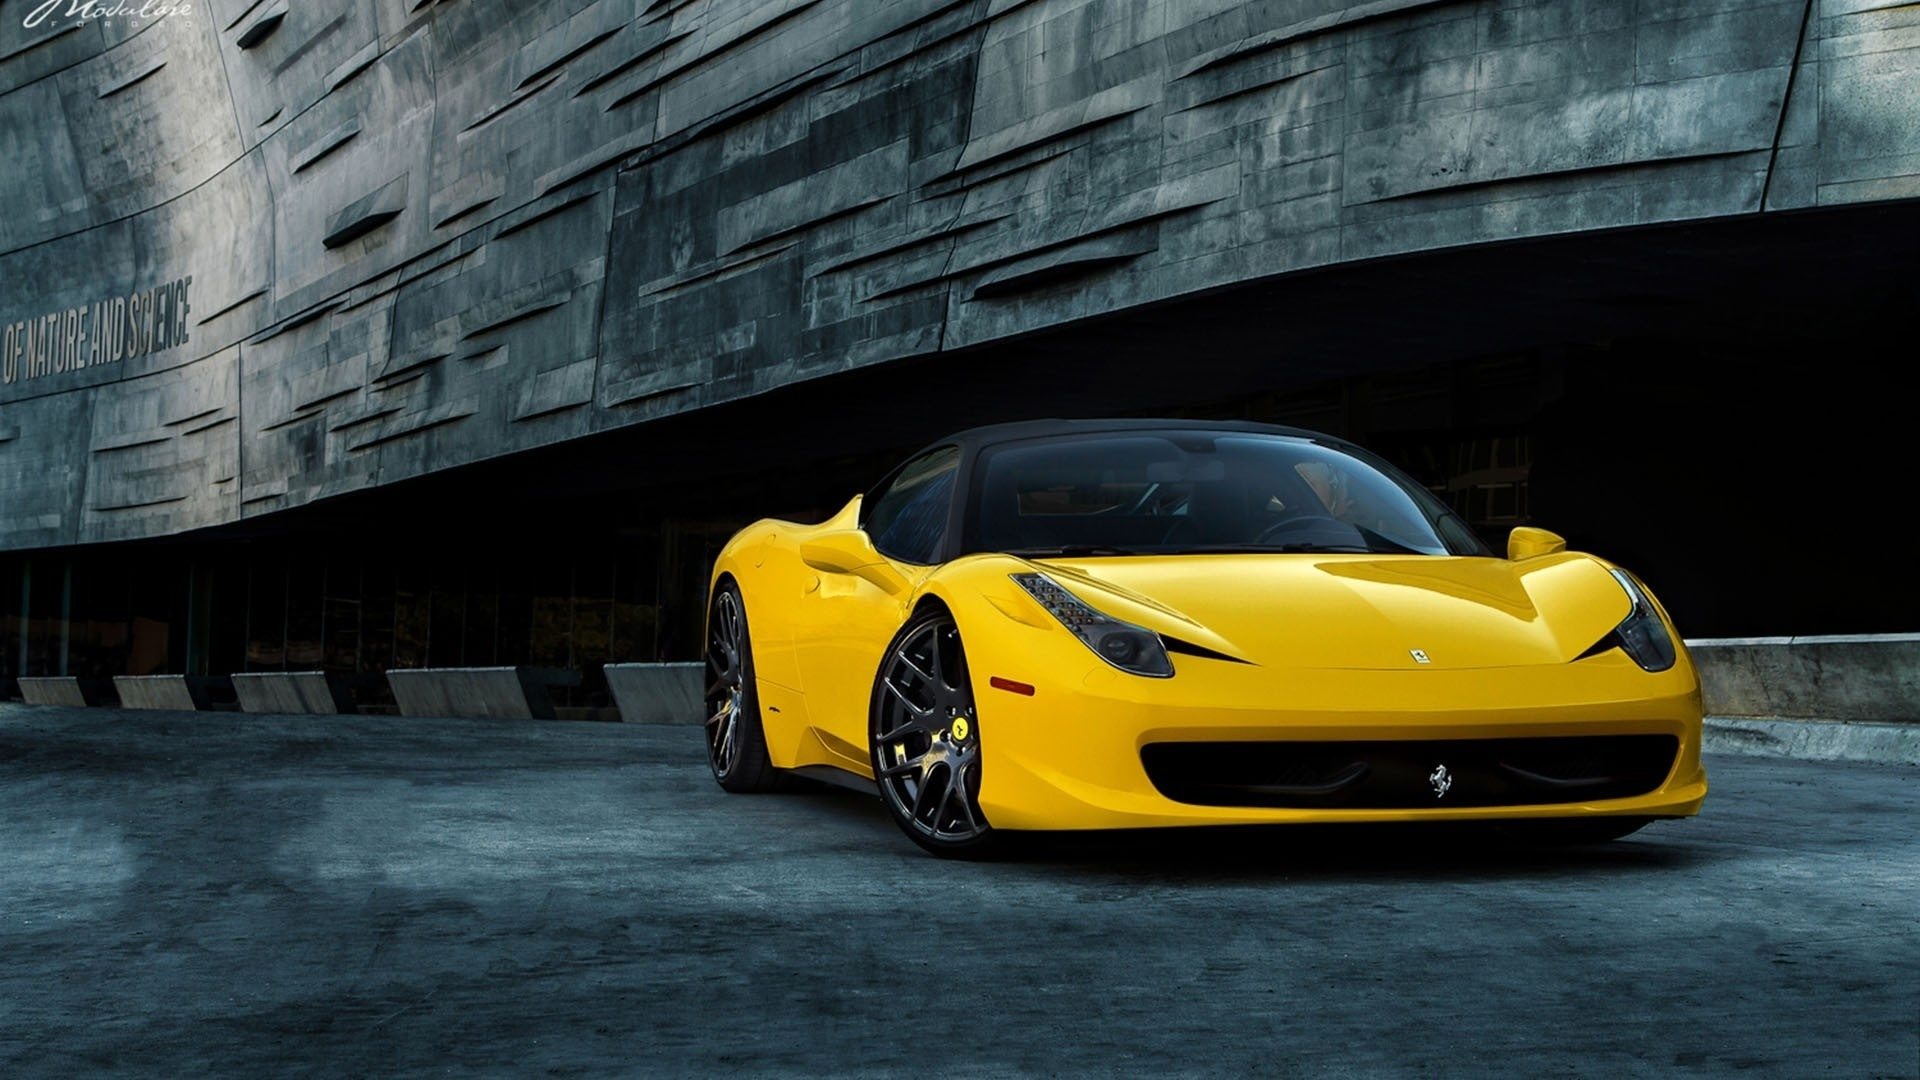 Wallpaperwiki Wallpapers Ferrari 458 Car PIC WPB005183